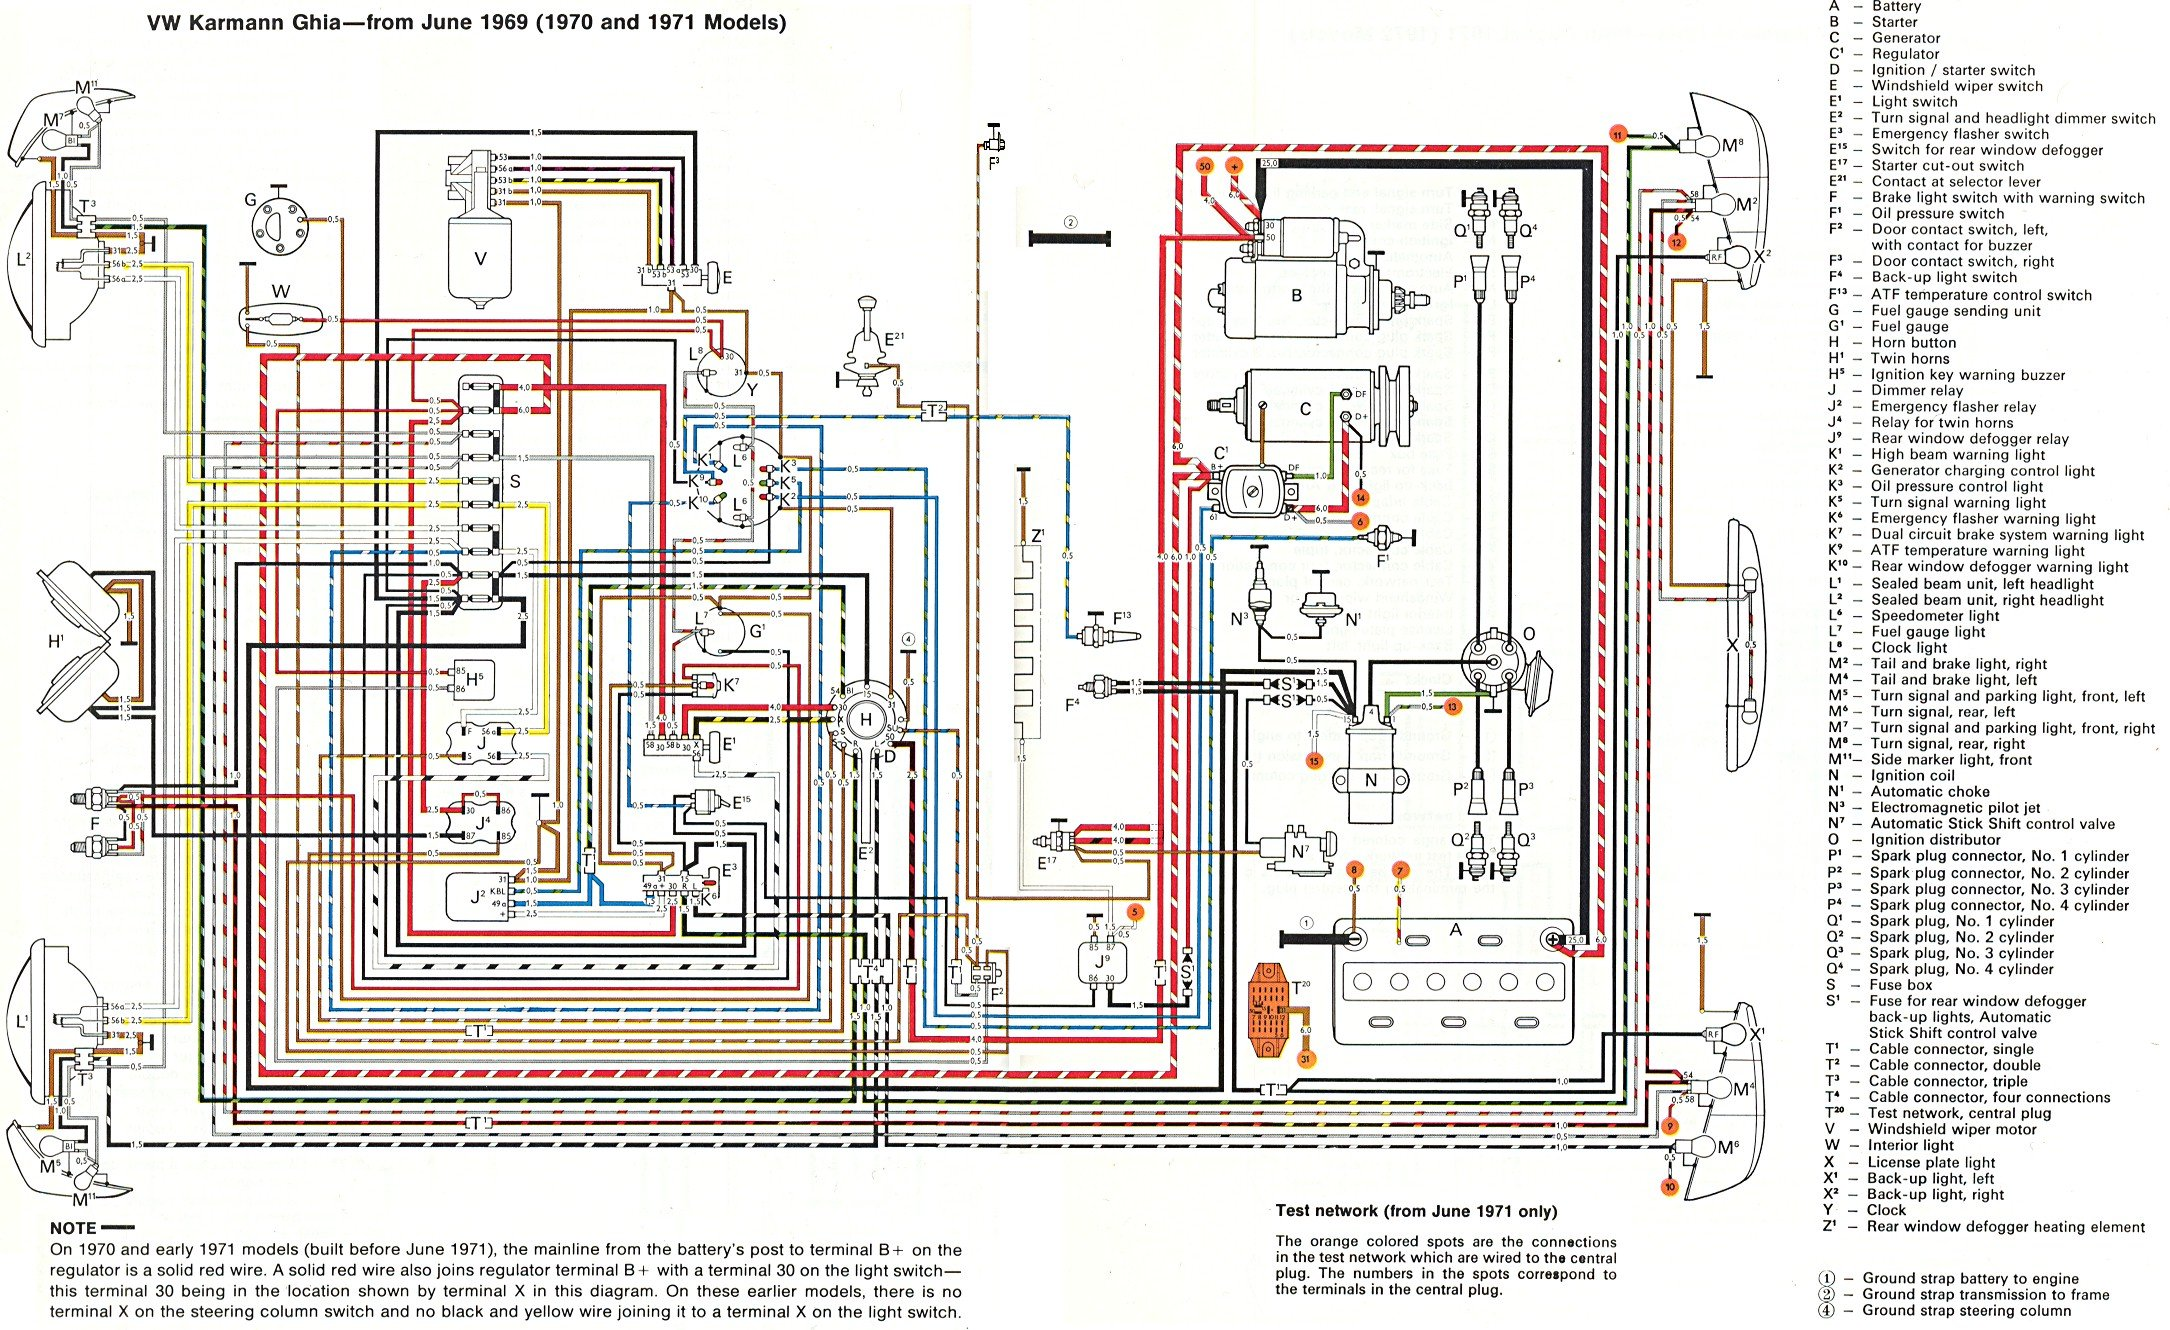 1999 chevy blazer fuel gauge wiring diagram thesamba com karmann ghia wiring diagrams chevy blazer fuel line diagram #15